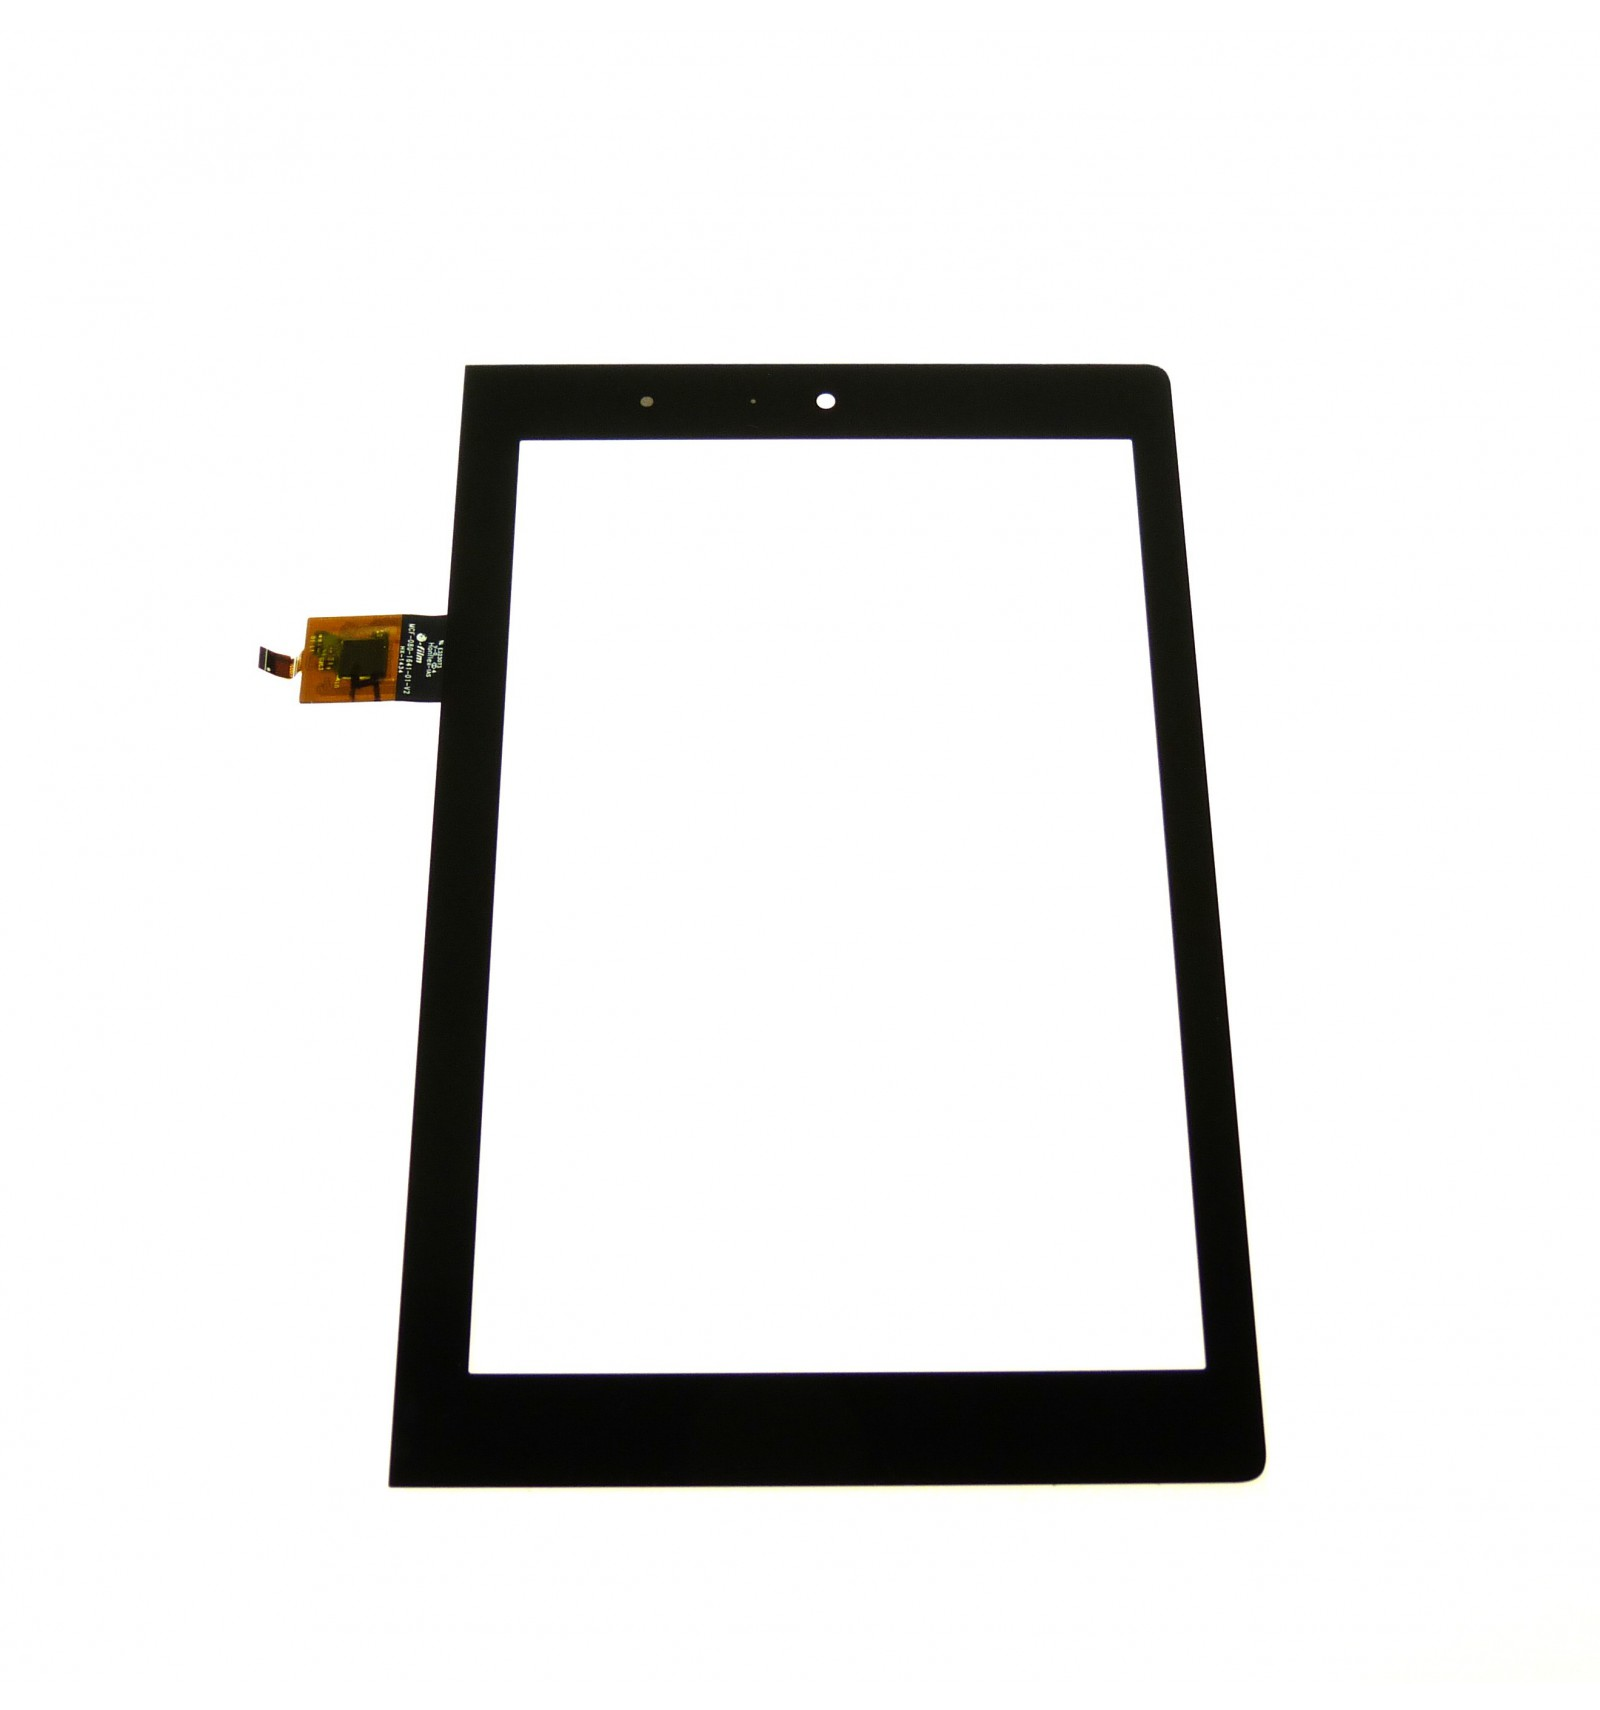 Touch screen black OEM for Lenovo Yoga Tablet 2 8.0